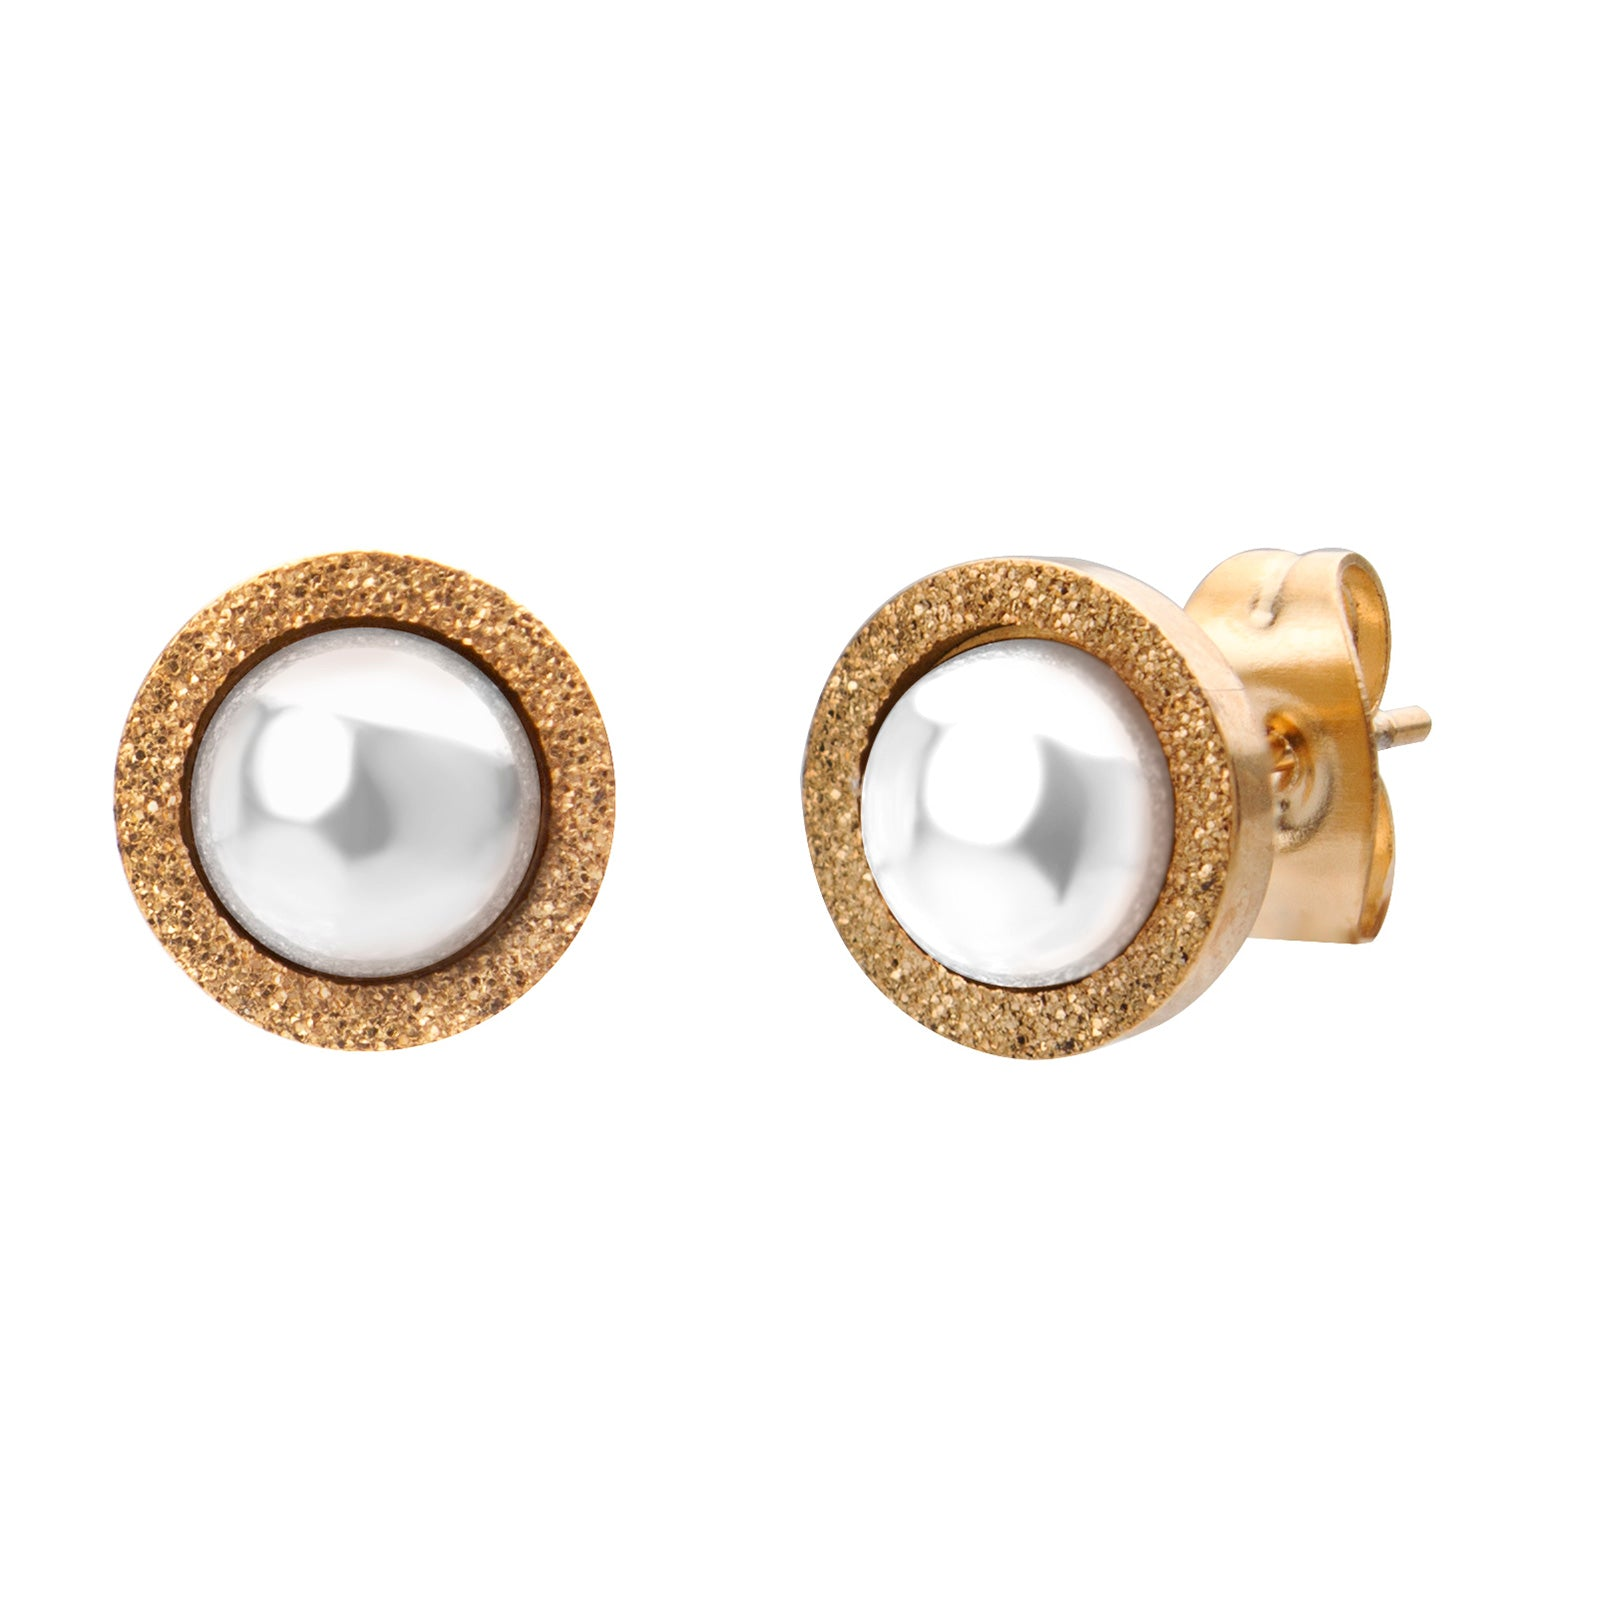 MNC-ER305-C Steel & Pearl Stud Earrings